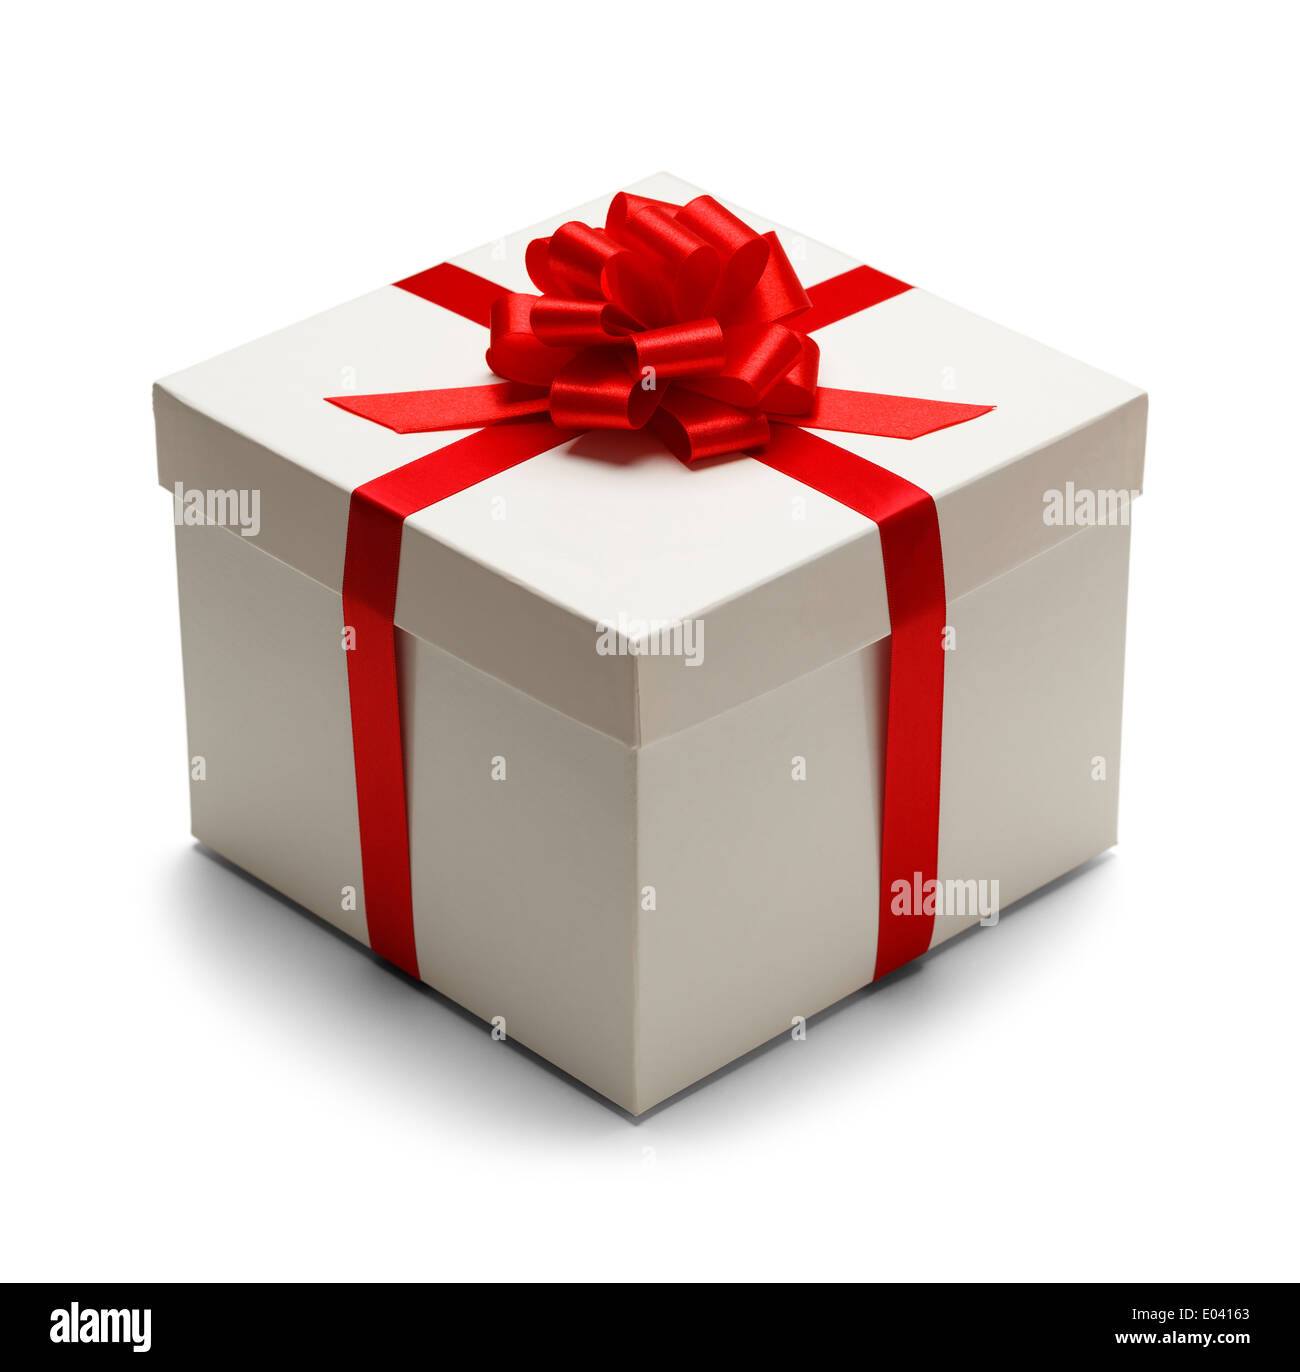 White Box with Lid and Red Bow with Ribbon Isolated on White Background. - Stock Image